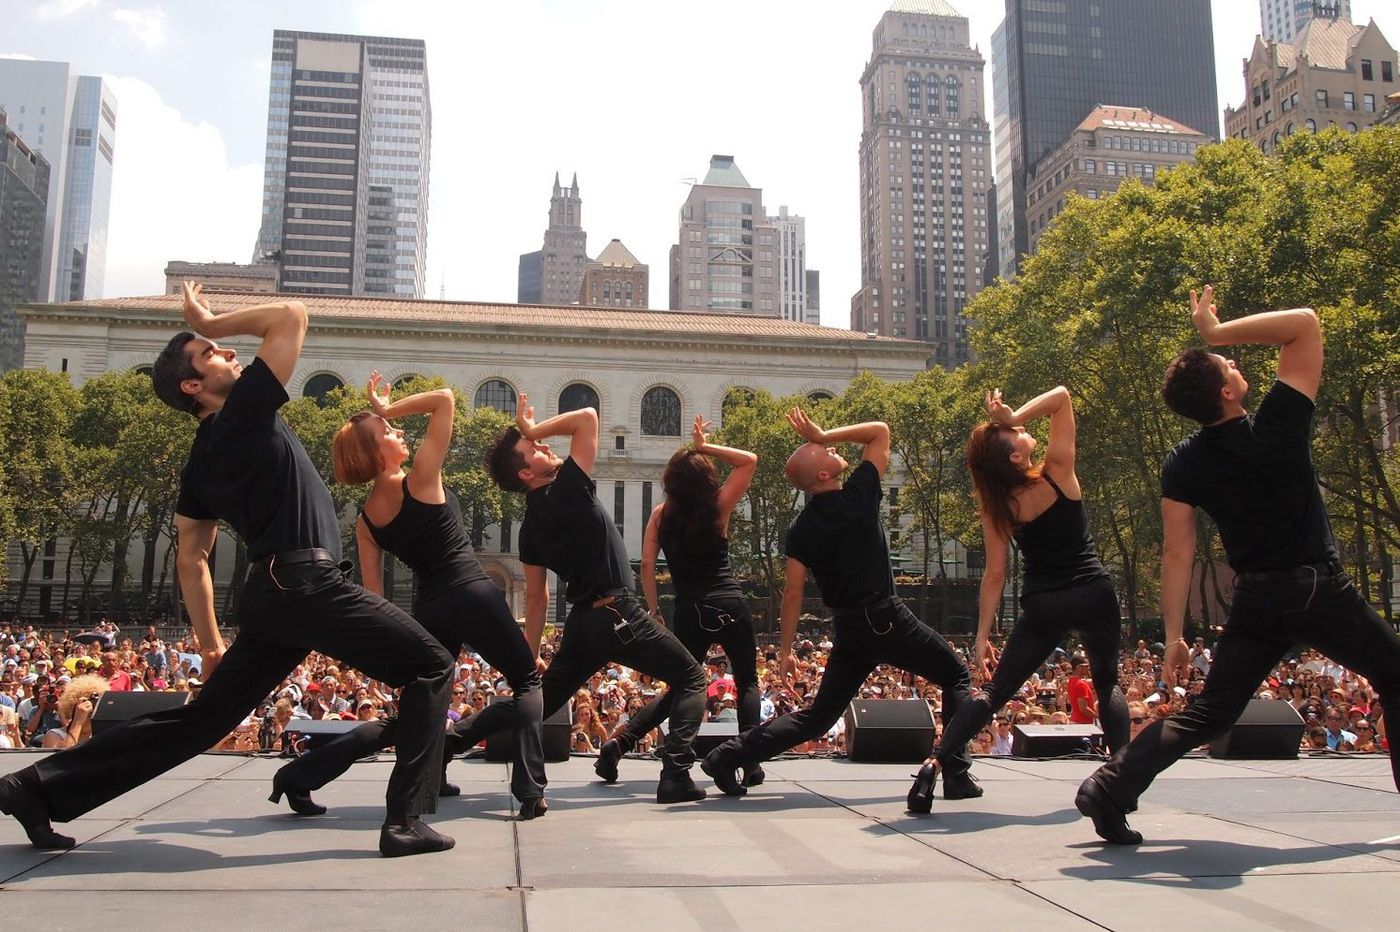 Broadway Beat: Here's a summer freebie in NYC for Philly theater buffs to check out